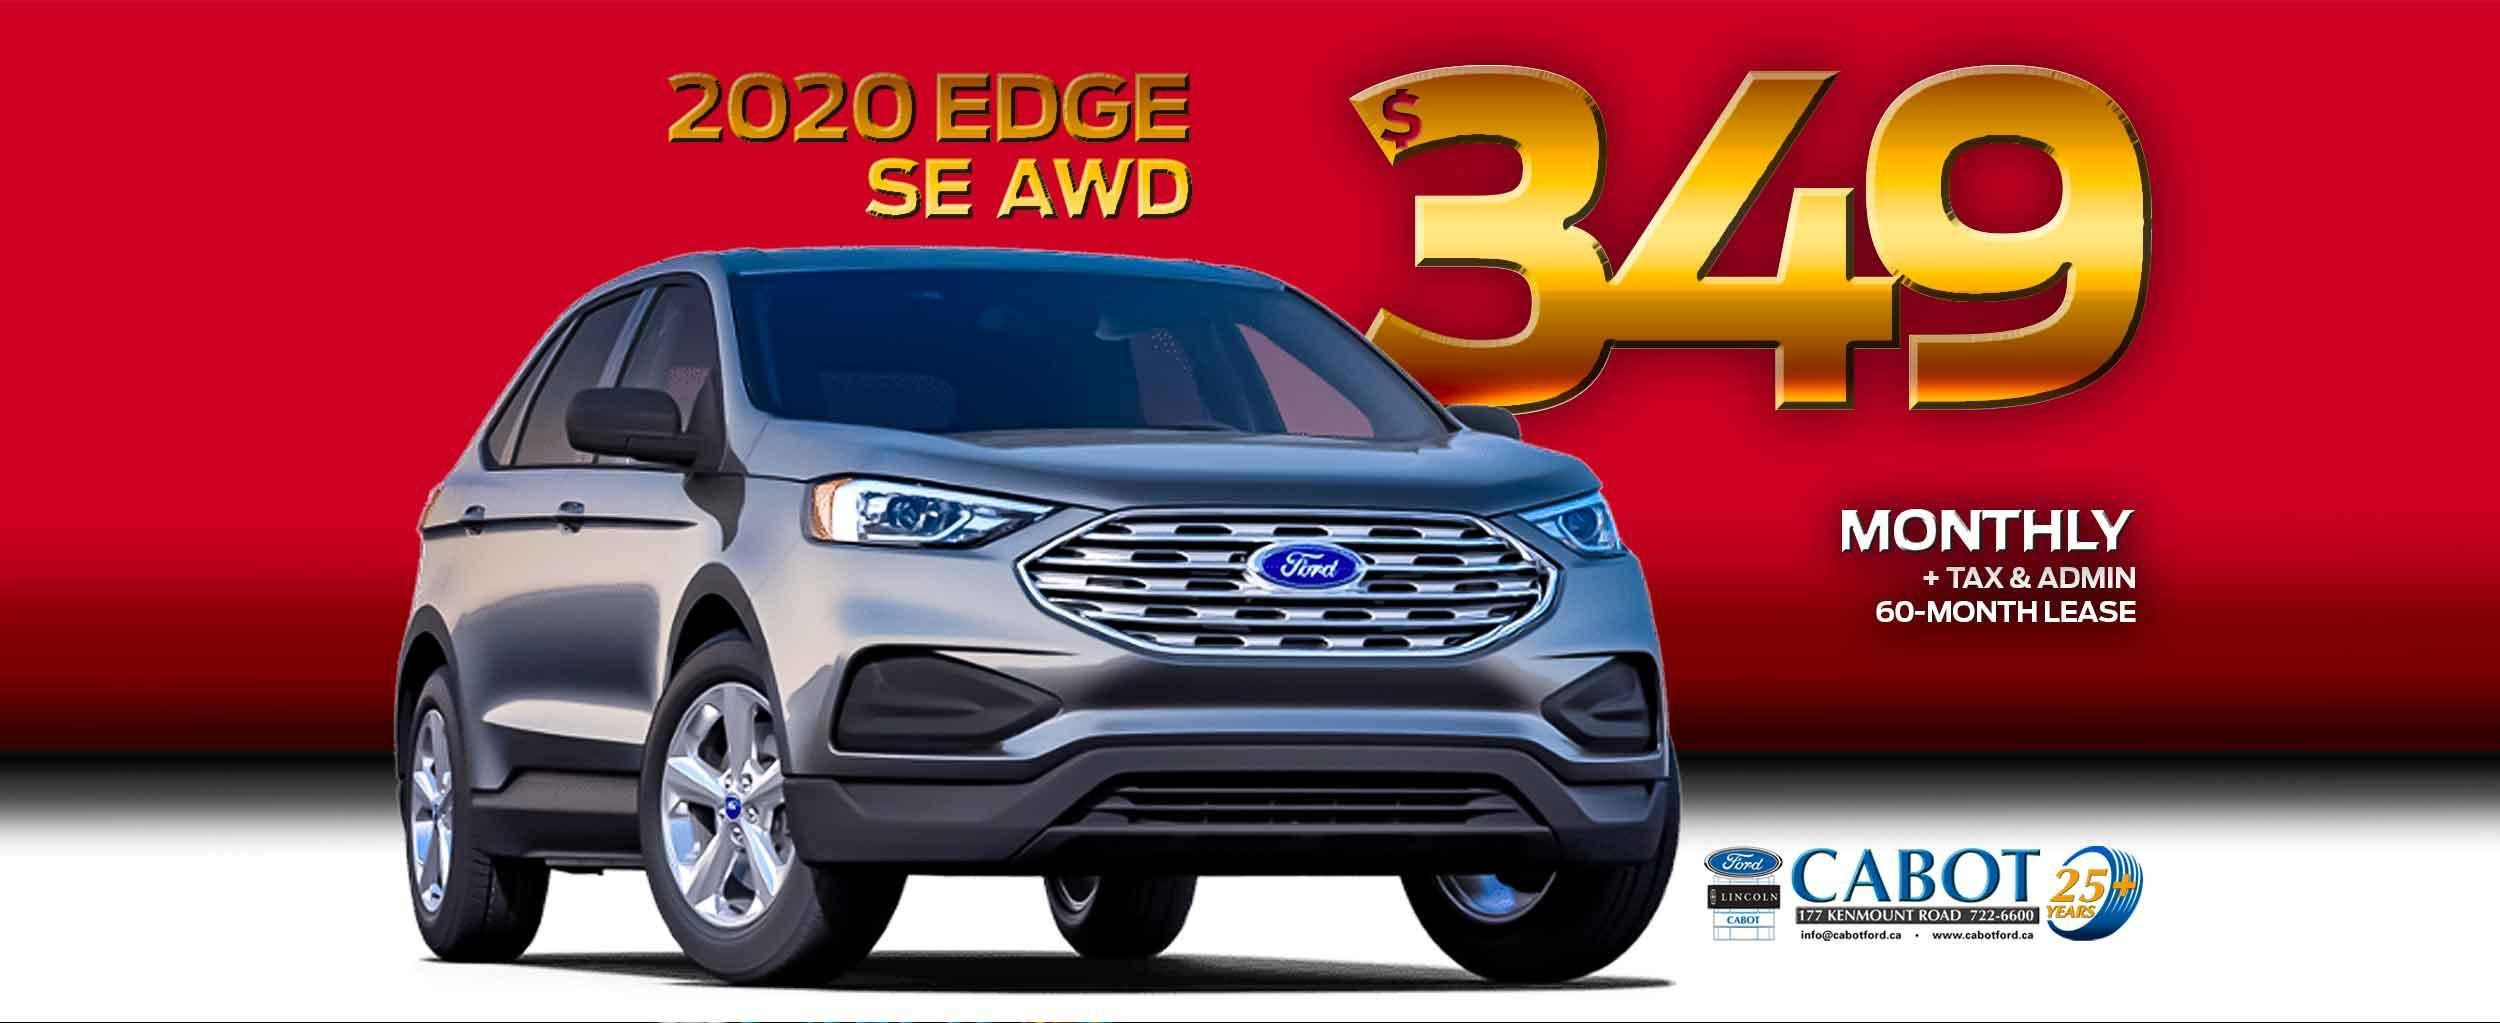 Lease a new Ford Edge for $349 monthly!